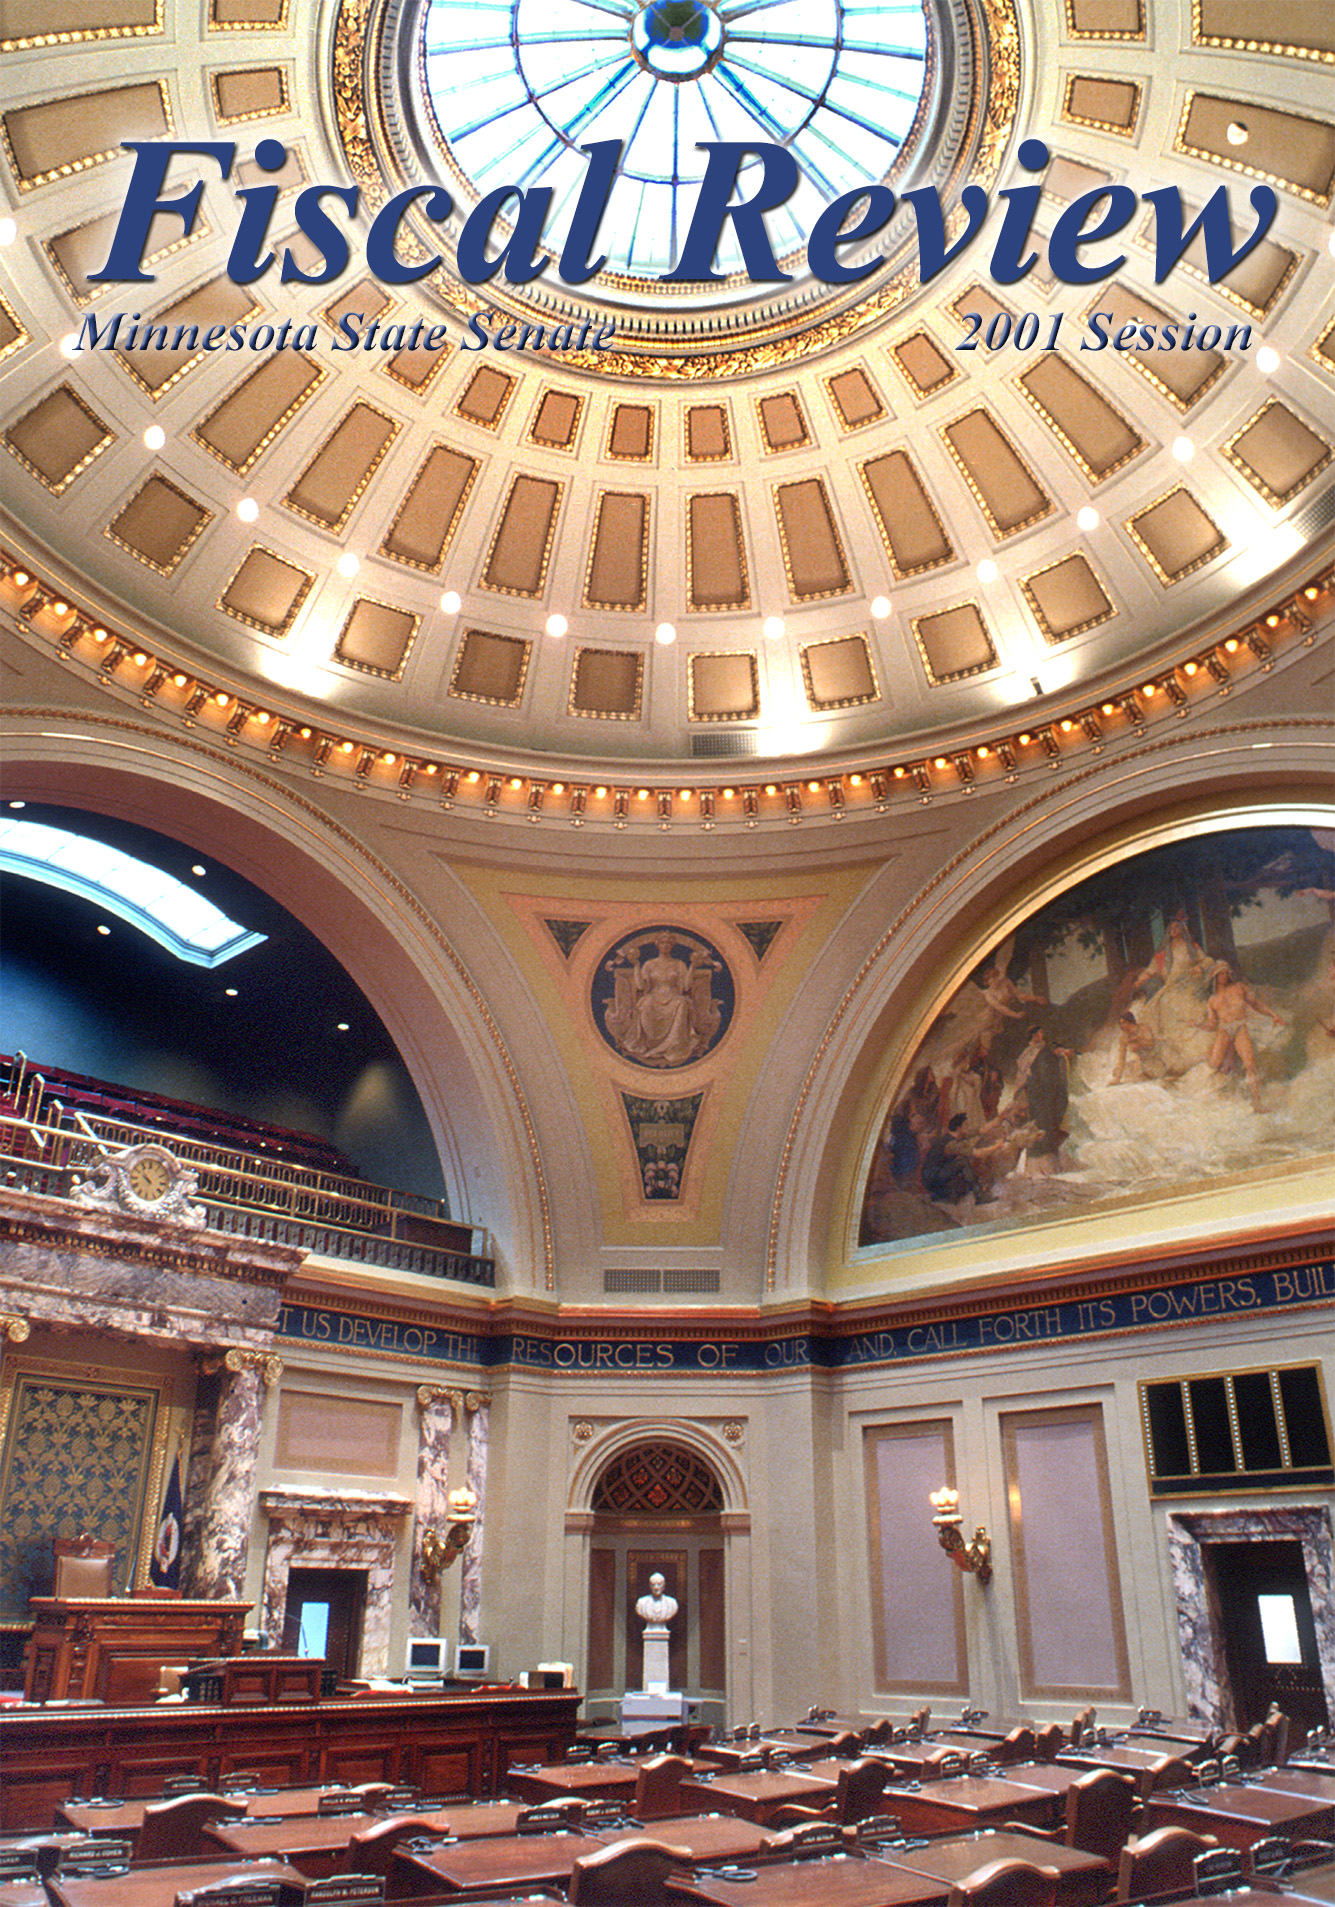 Cover of 2001 Fiscal Review